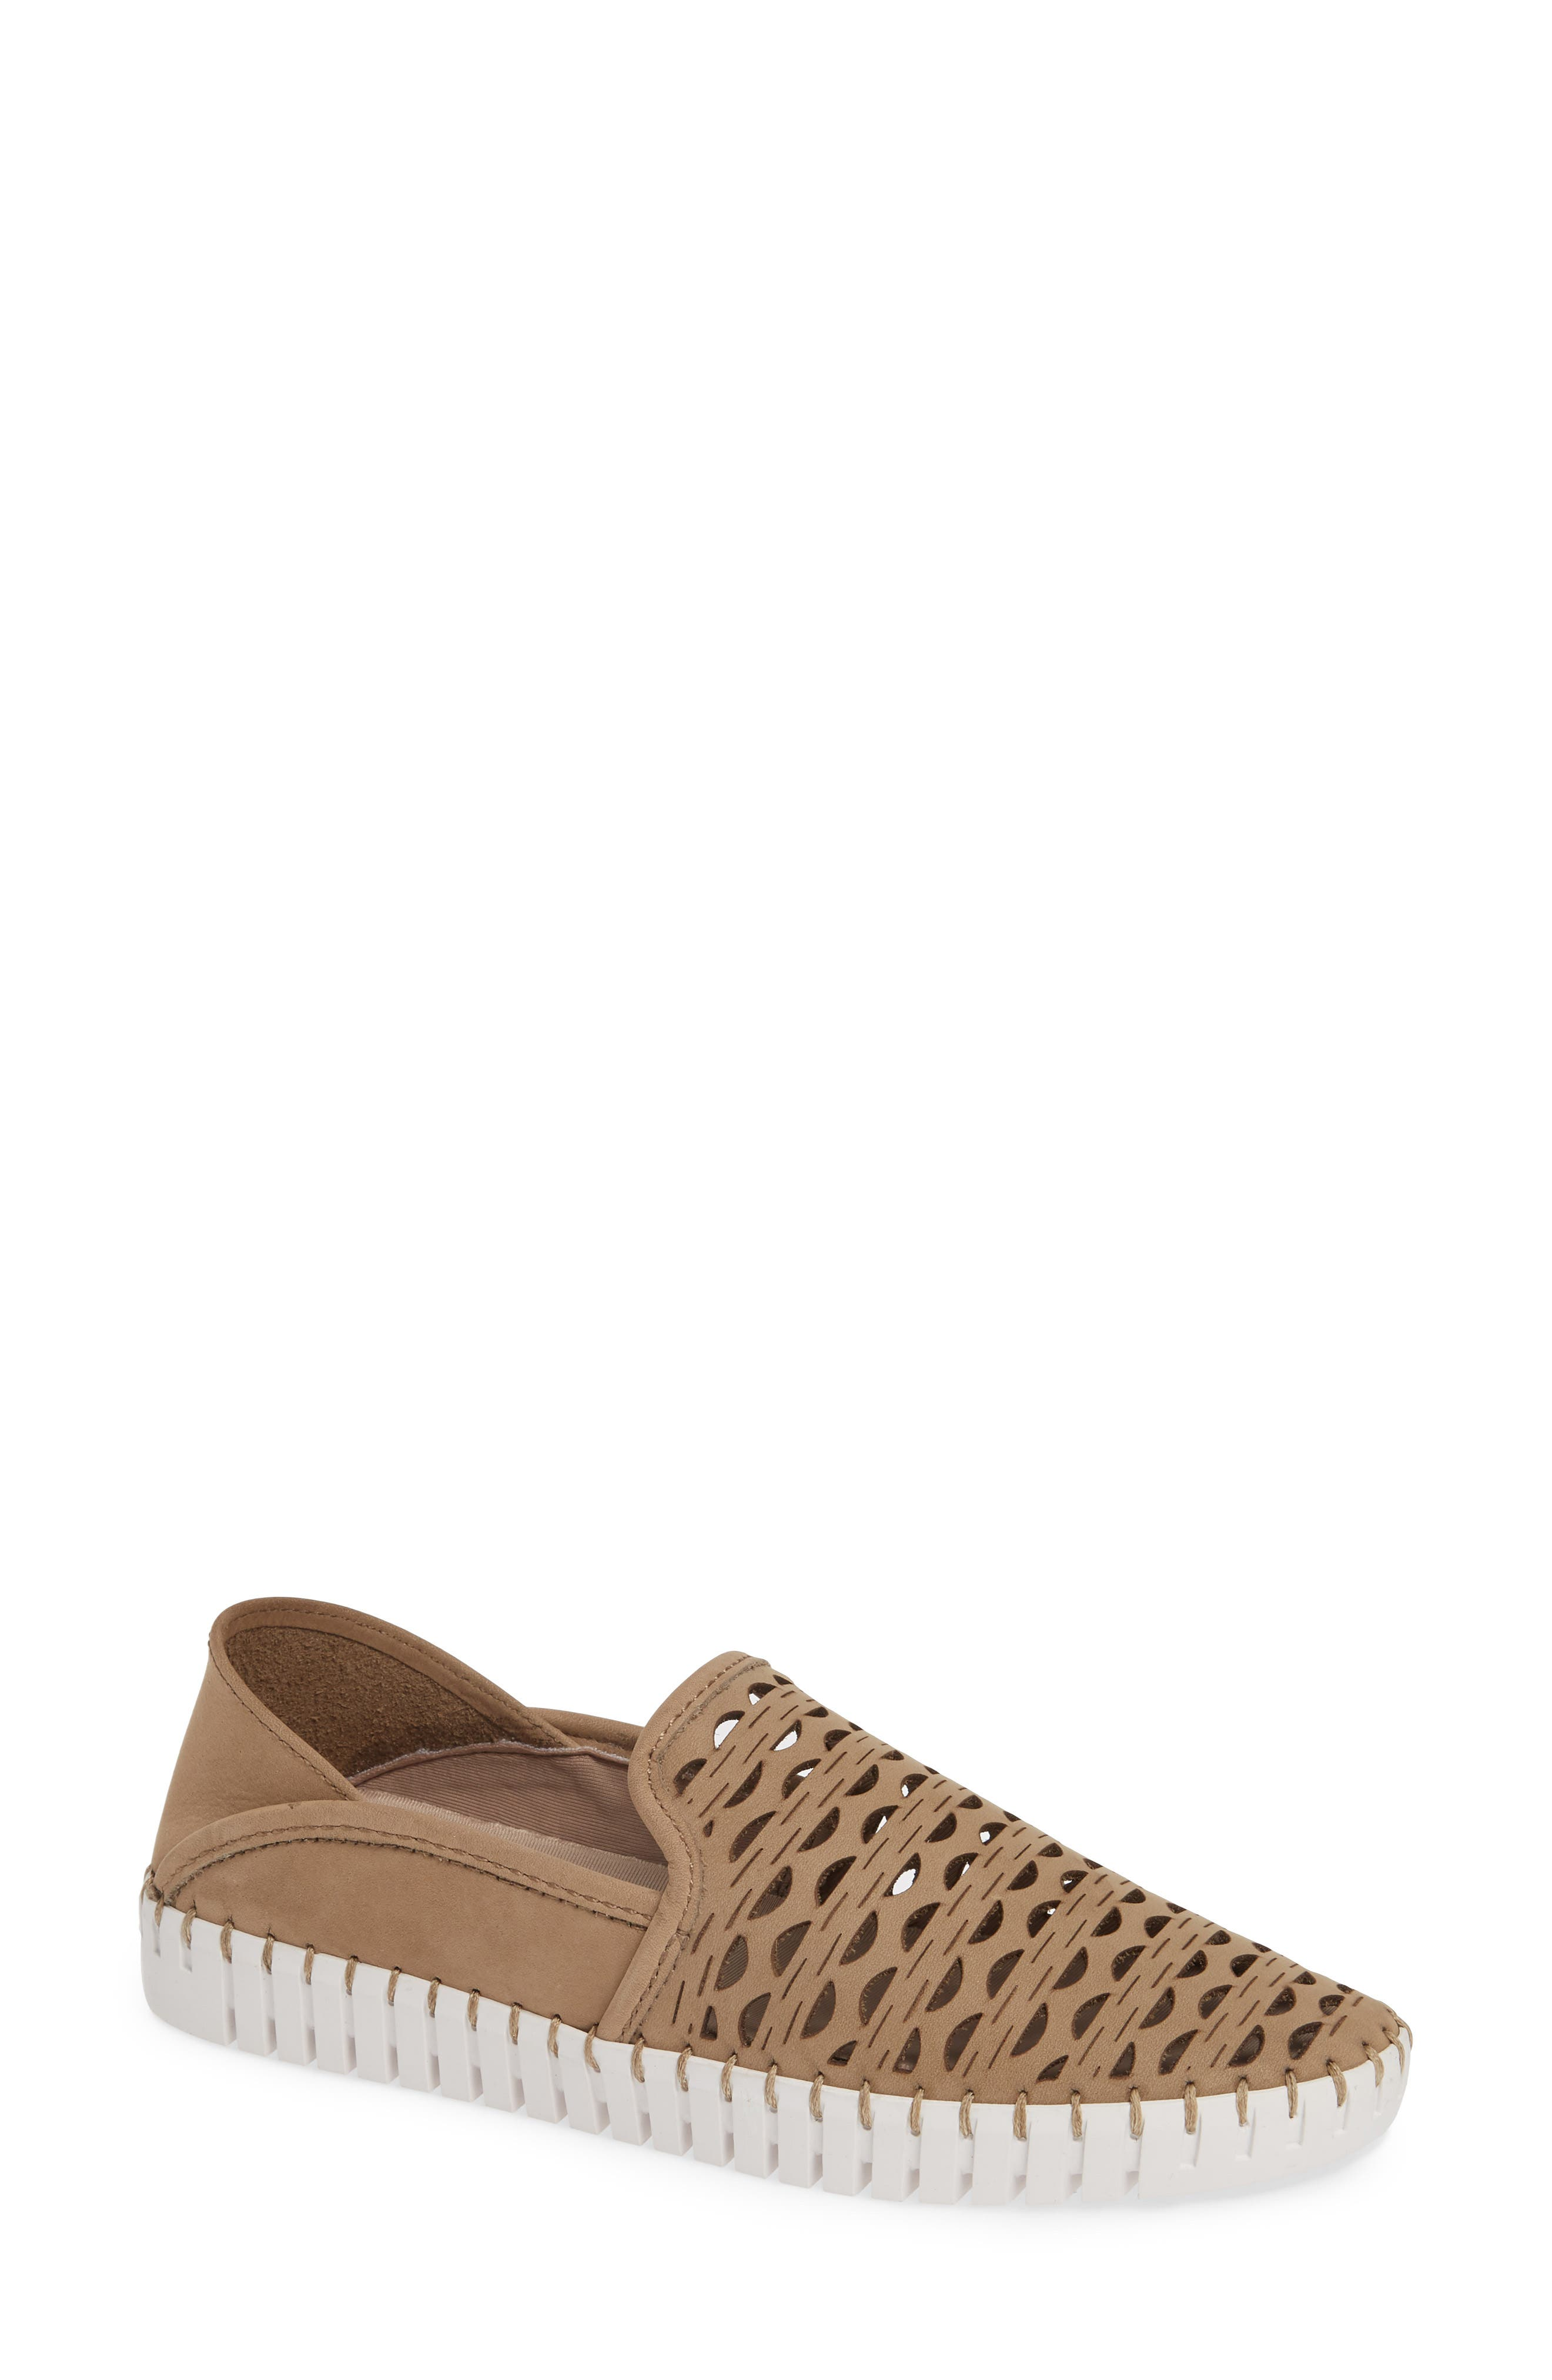 Janelle Perforated Slip-On in Sand Perf Nubuck